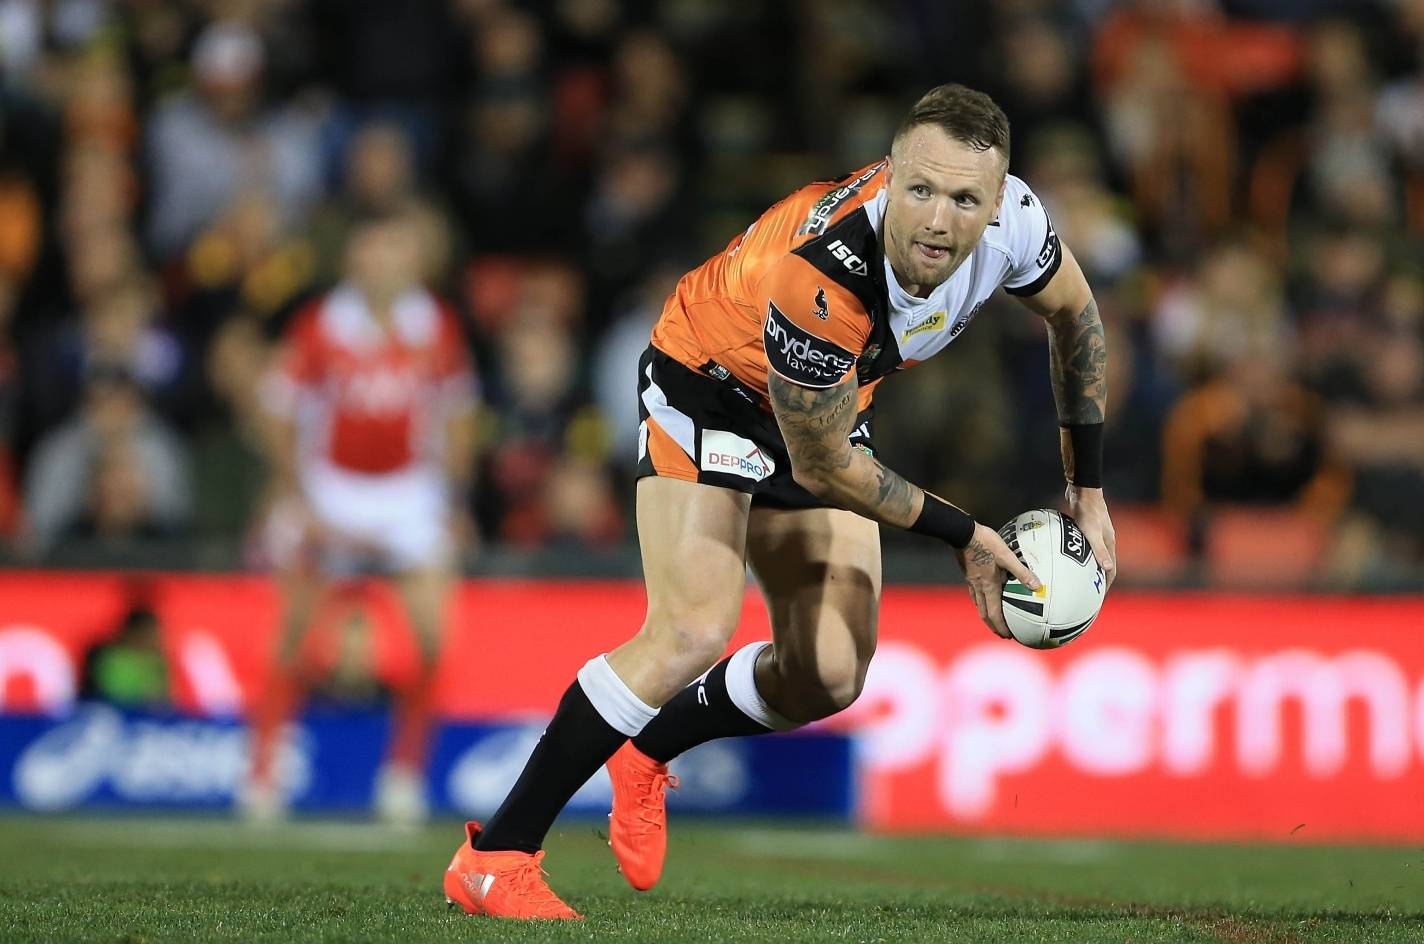 Huddersfield sign Rankin from Wests Tigers